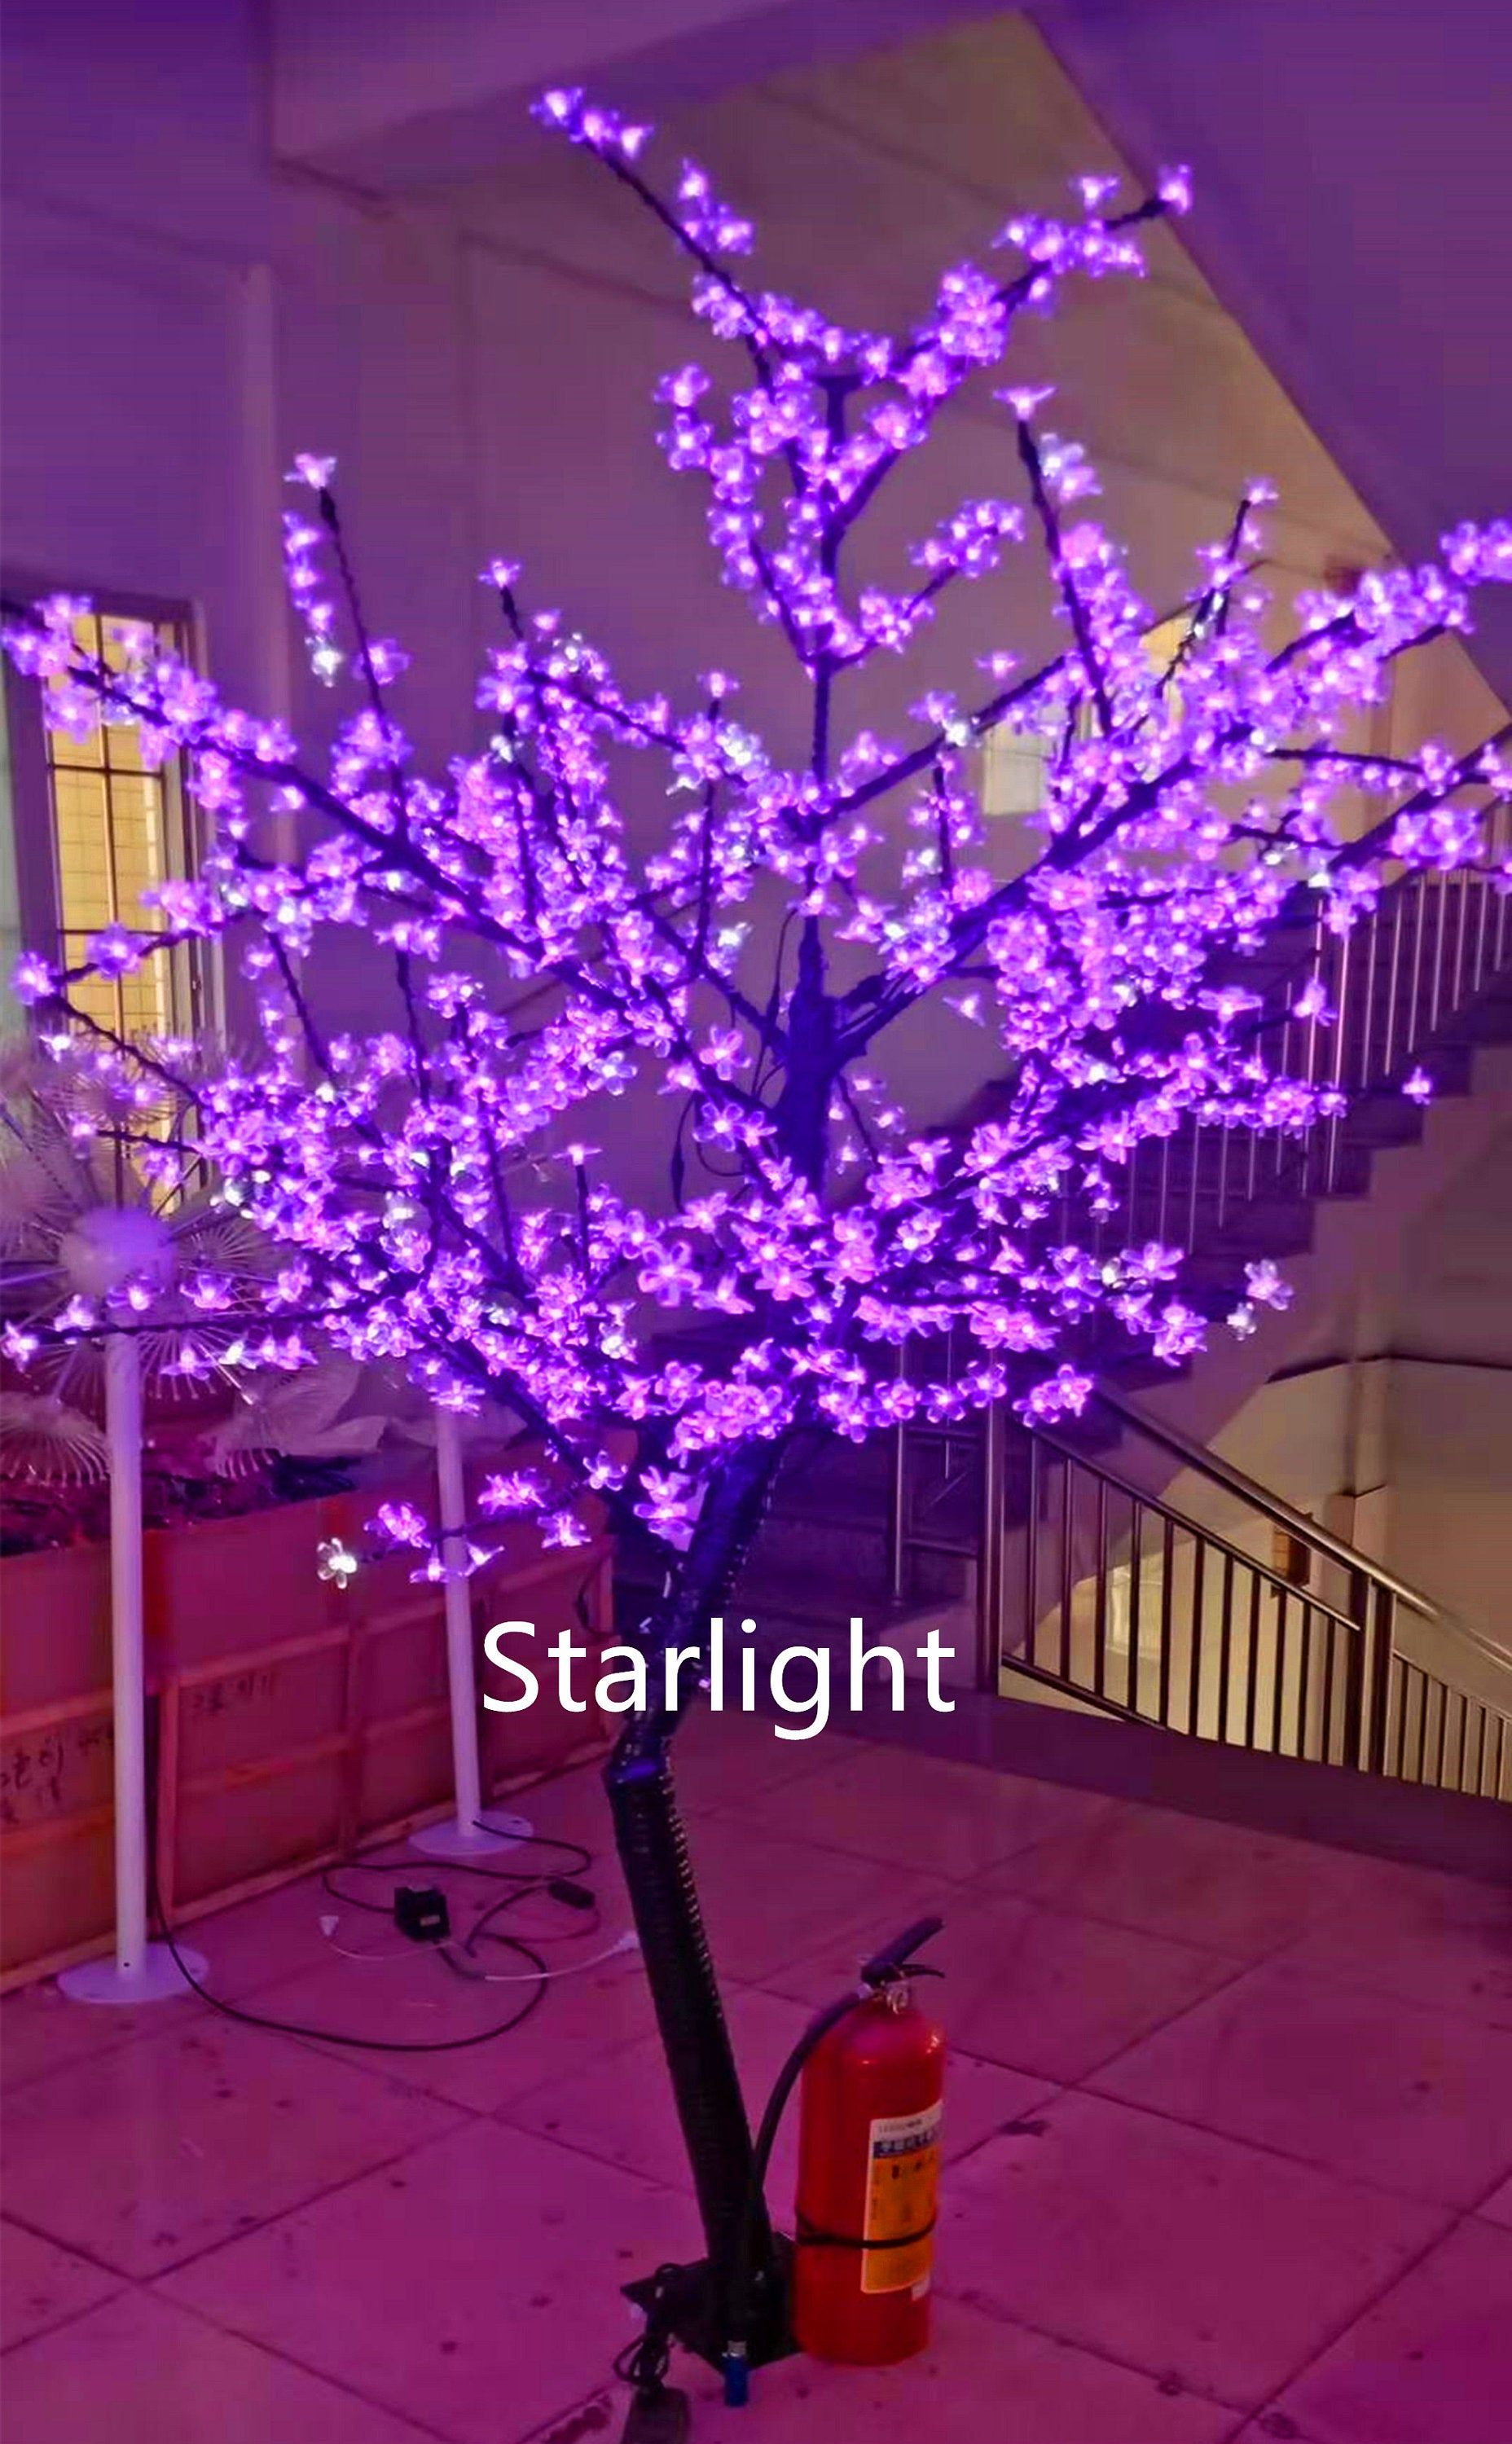 7ft Outdoor Led Artificial Cherry Blossom Tree Light Christmas Tree 21 Functi In 2021 Artificial Cherry Blossom Tree Cherry Blossom Tree Multi Colored Christmas Lights